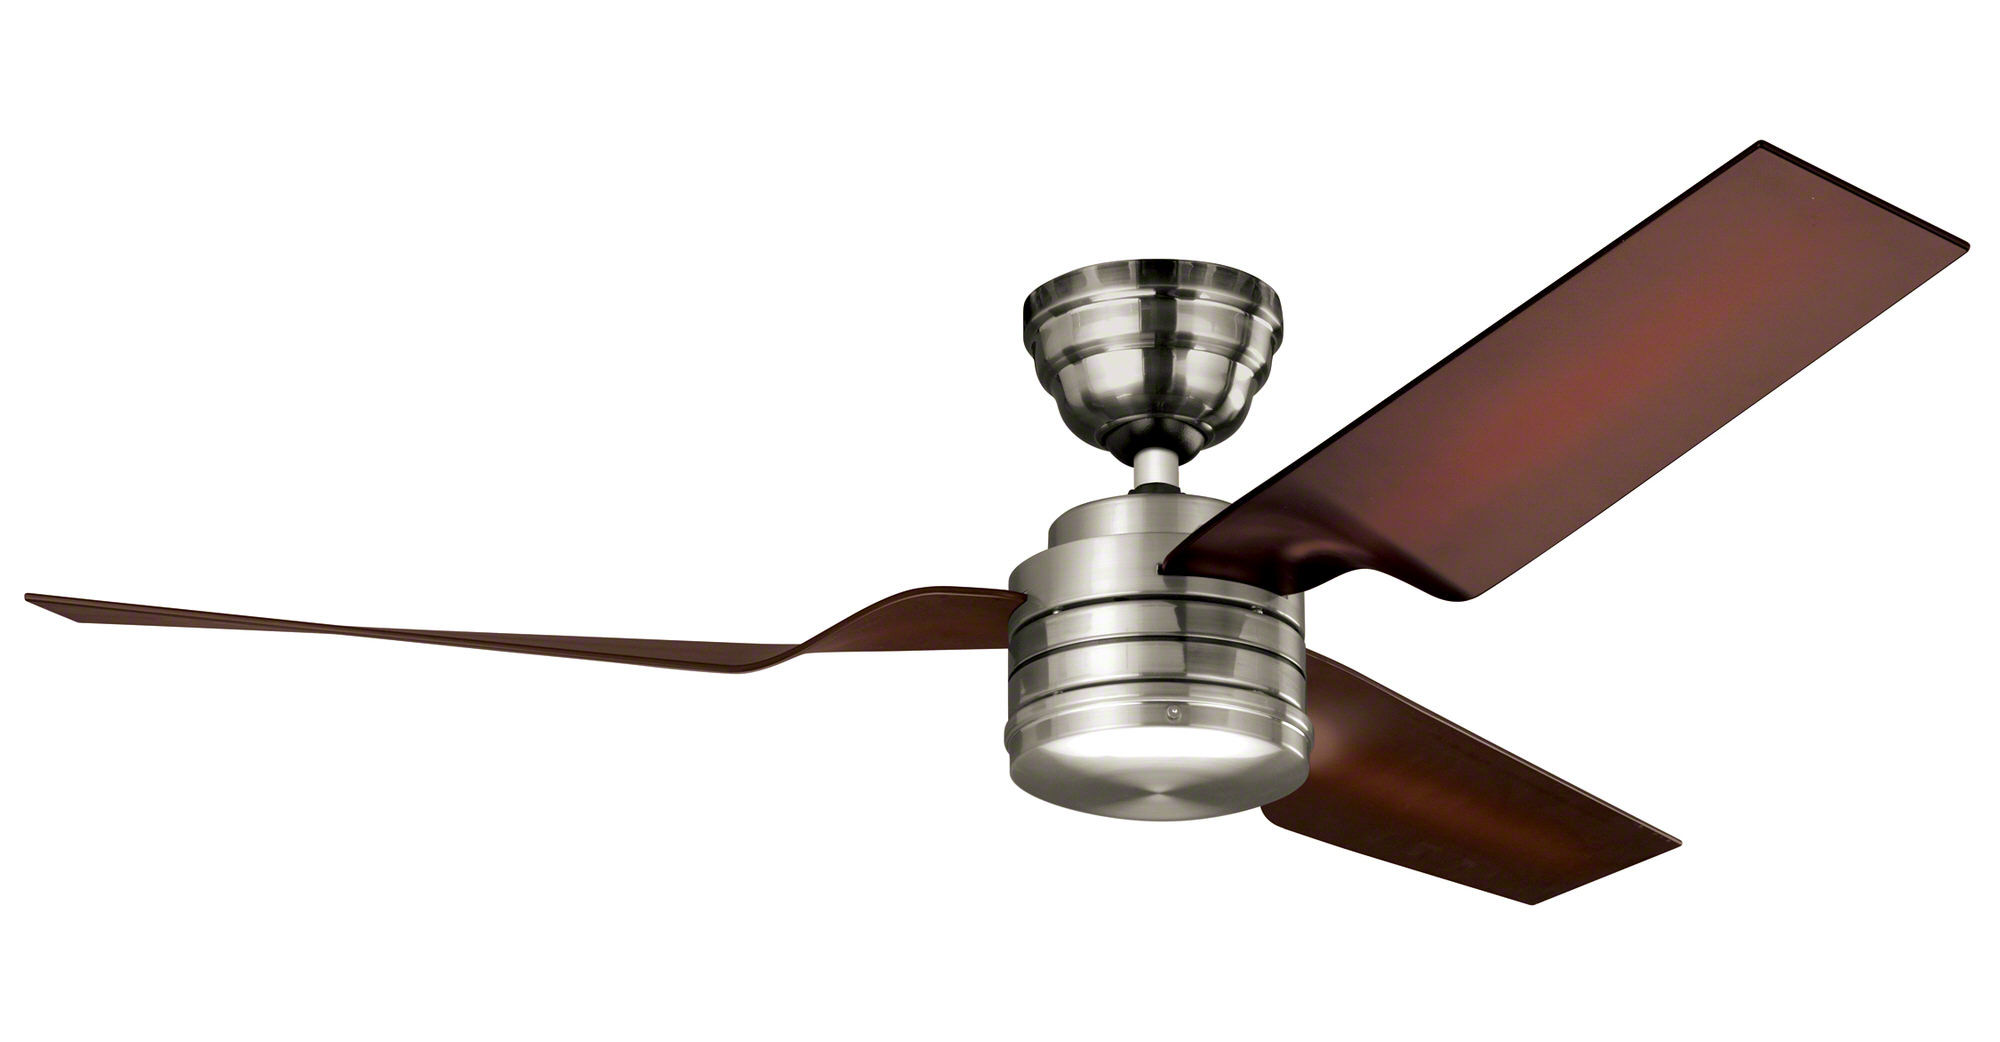 fan ceiling item image cfm clear capitol shown burnished fans hunter in magnifying covent brass blade finish and inch frosted garden glass